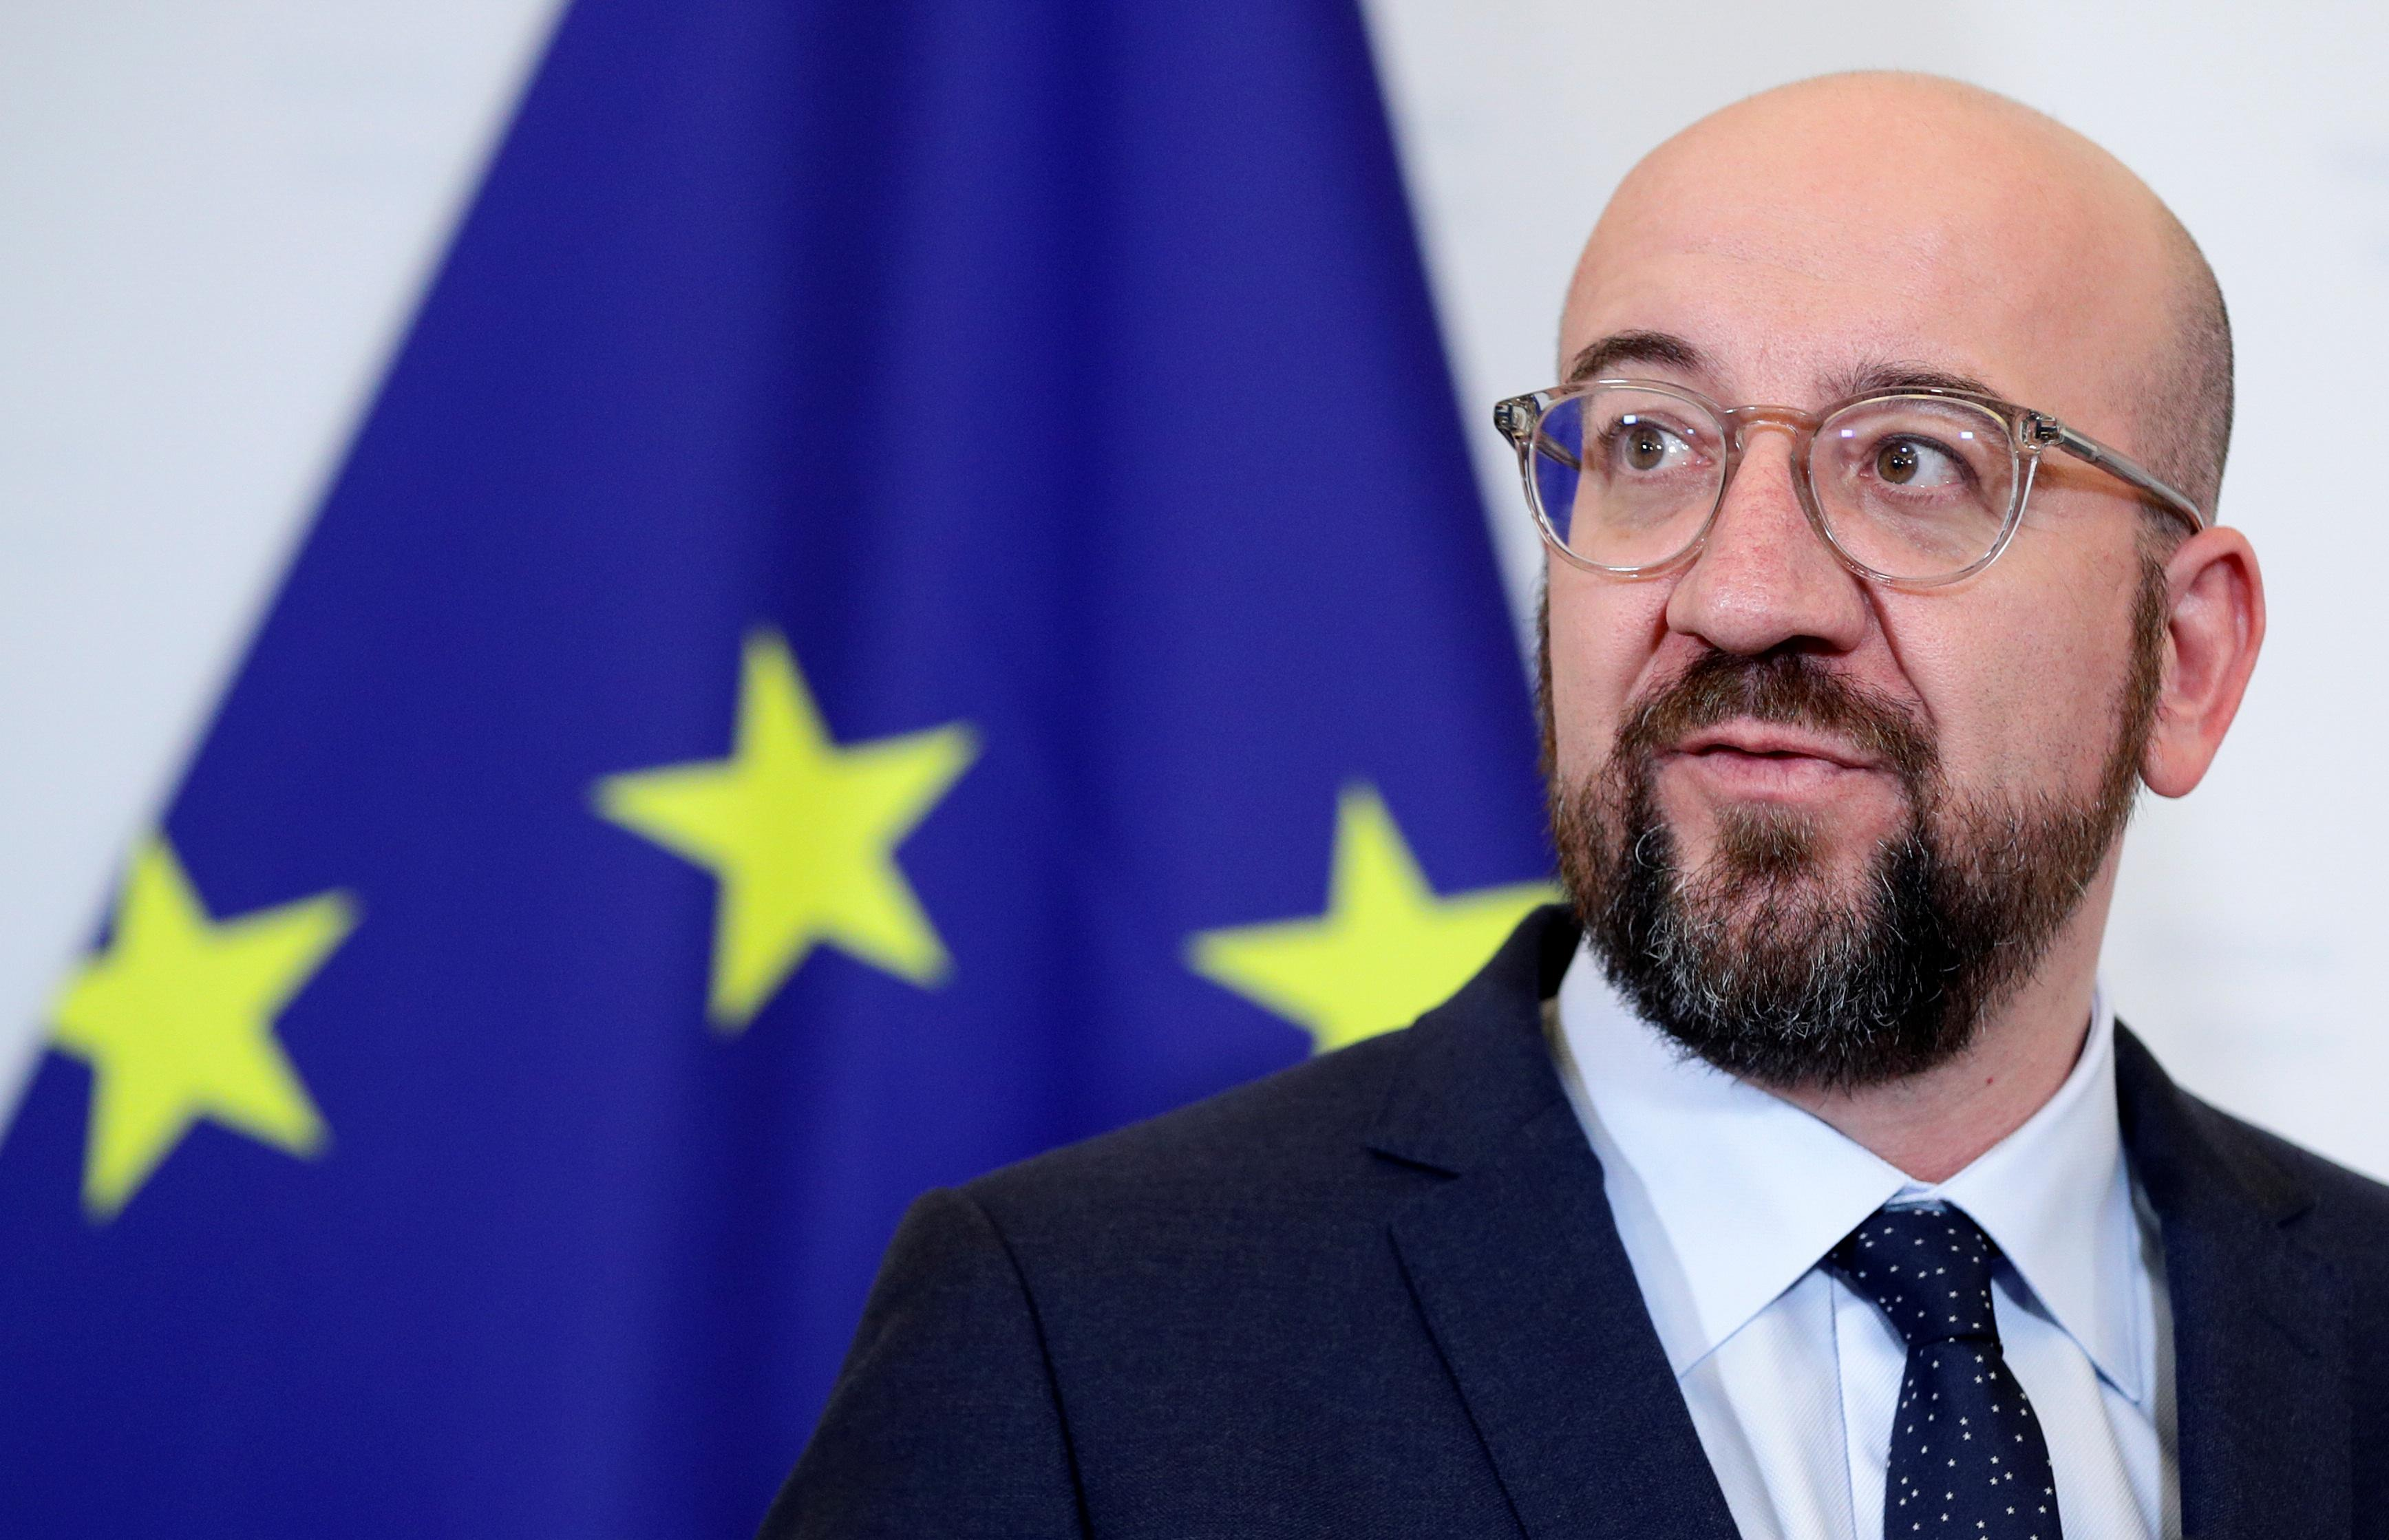 EU council head calls budget meeting for February 20